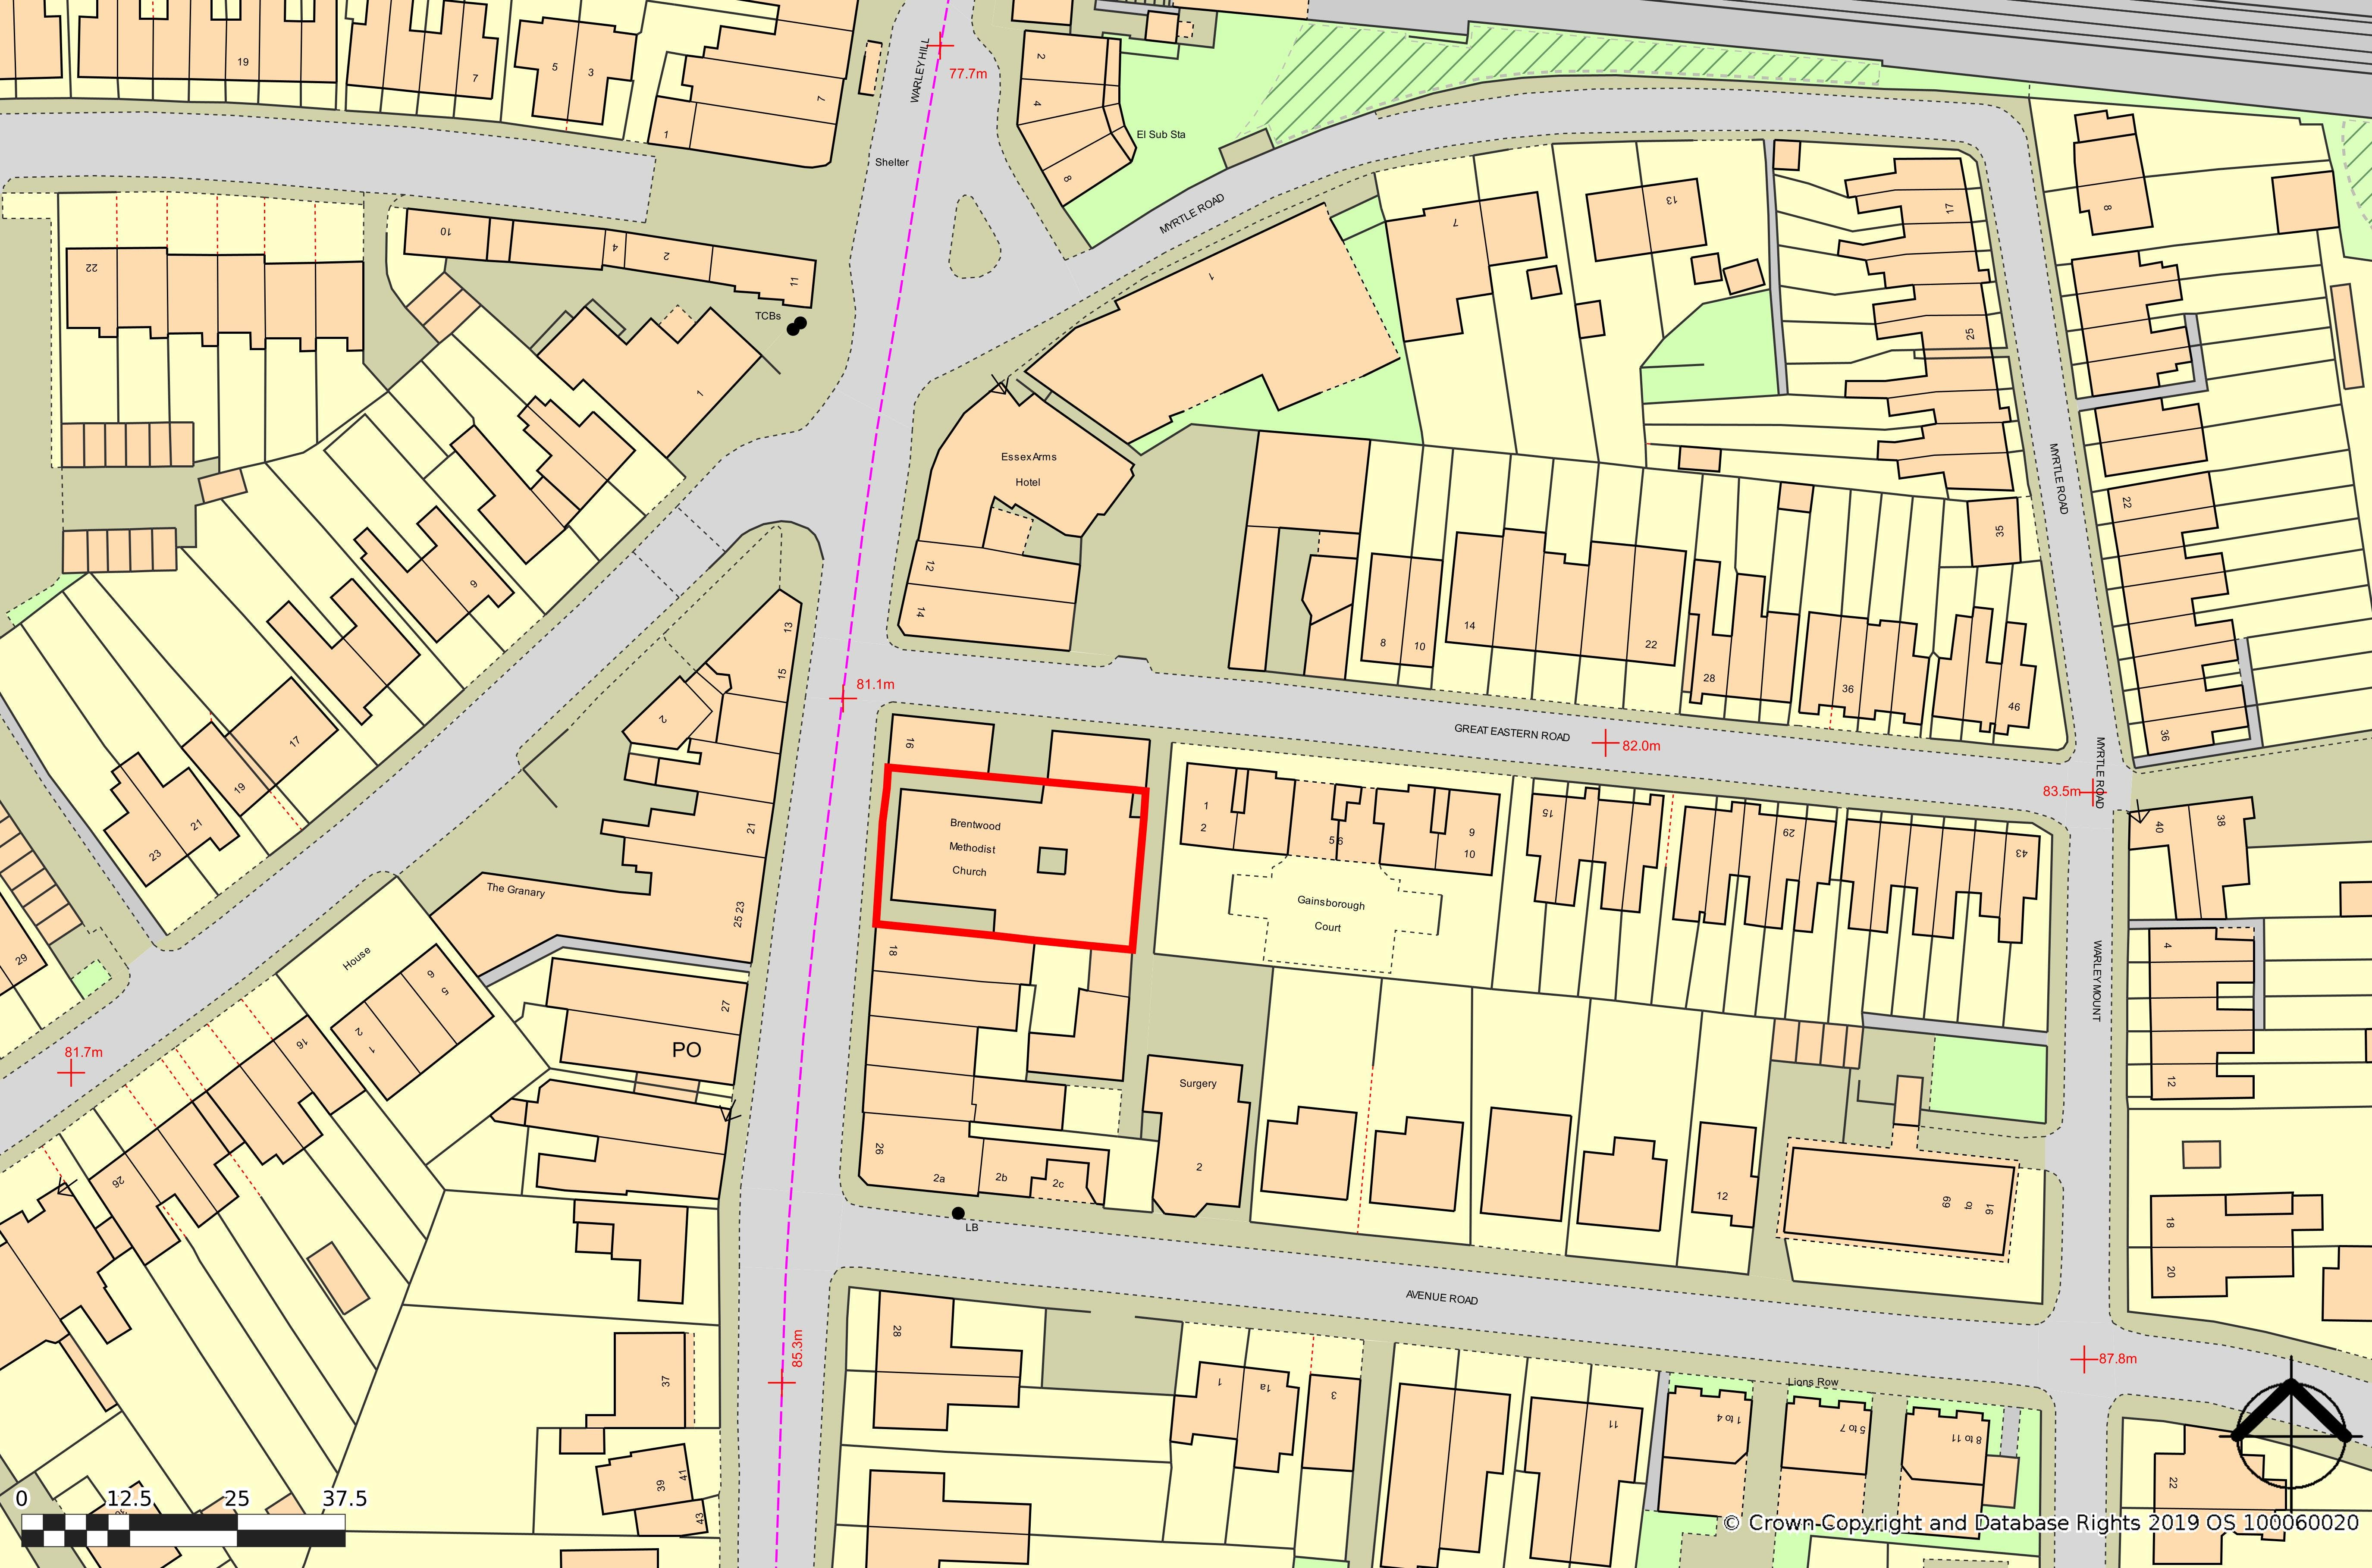 Brentwood Methodist Church, Warley Hill, Brentwood, Development (Land & Buildings) / Offices / Suis Generis (other) / Restaurant / Retail For Sale - brentwoodmethodistchurchwarleyhillwarleybrentwoodcm145ha.jpg